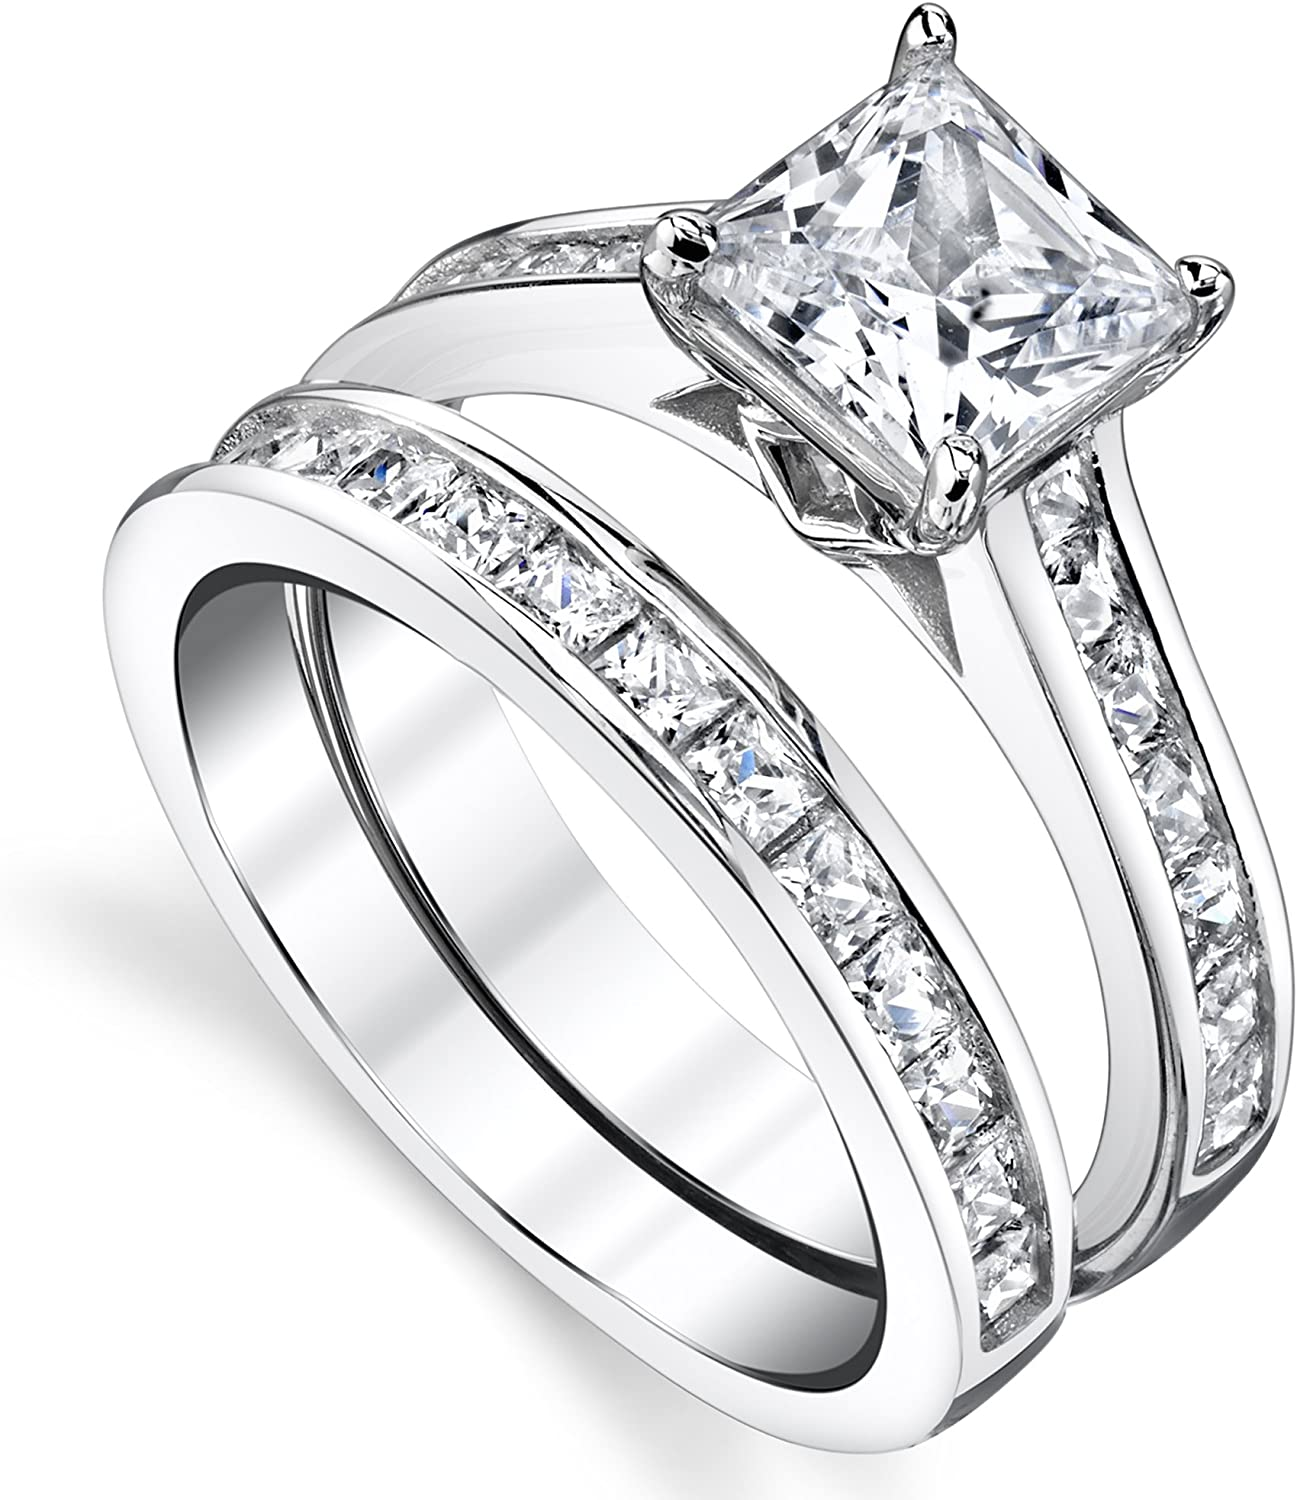 SADUORHAPPY 925 Sterling Silver Cubic Zirconia Channel-Set Engagement Ring and Wedding Band Bridal Set Couple Rings